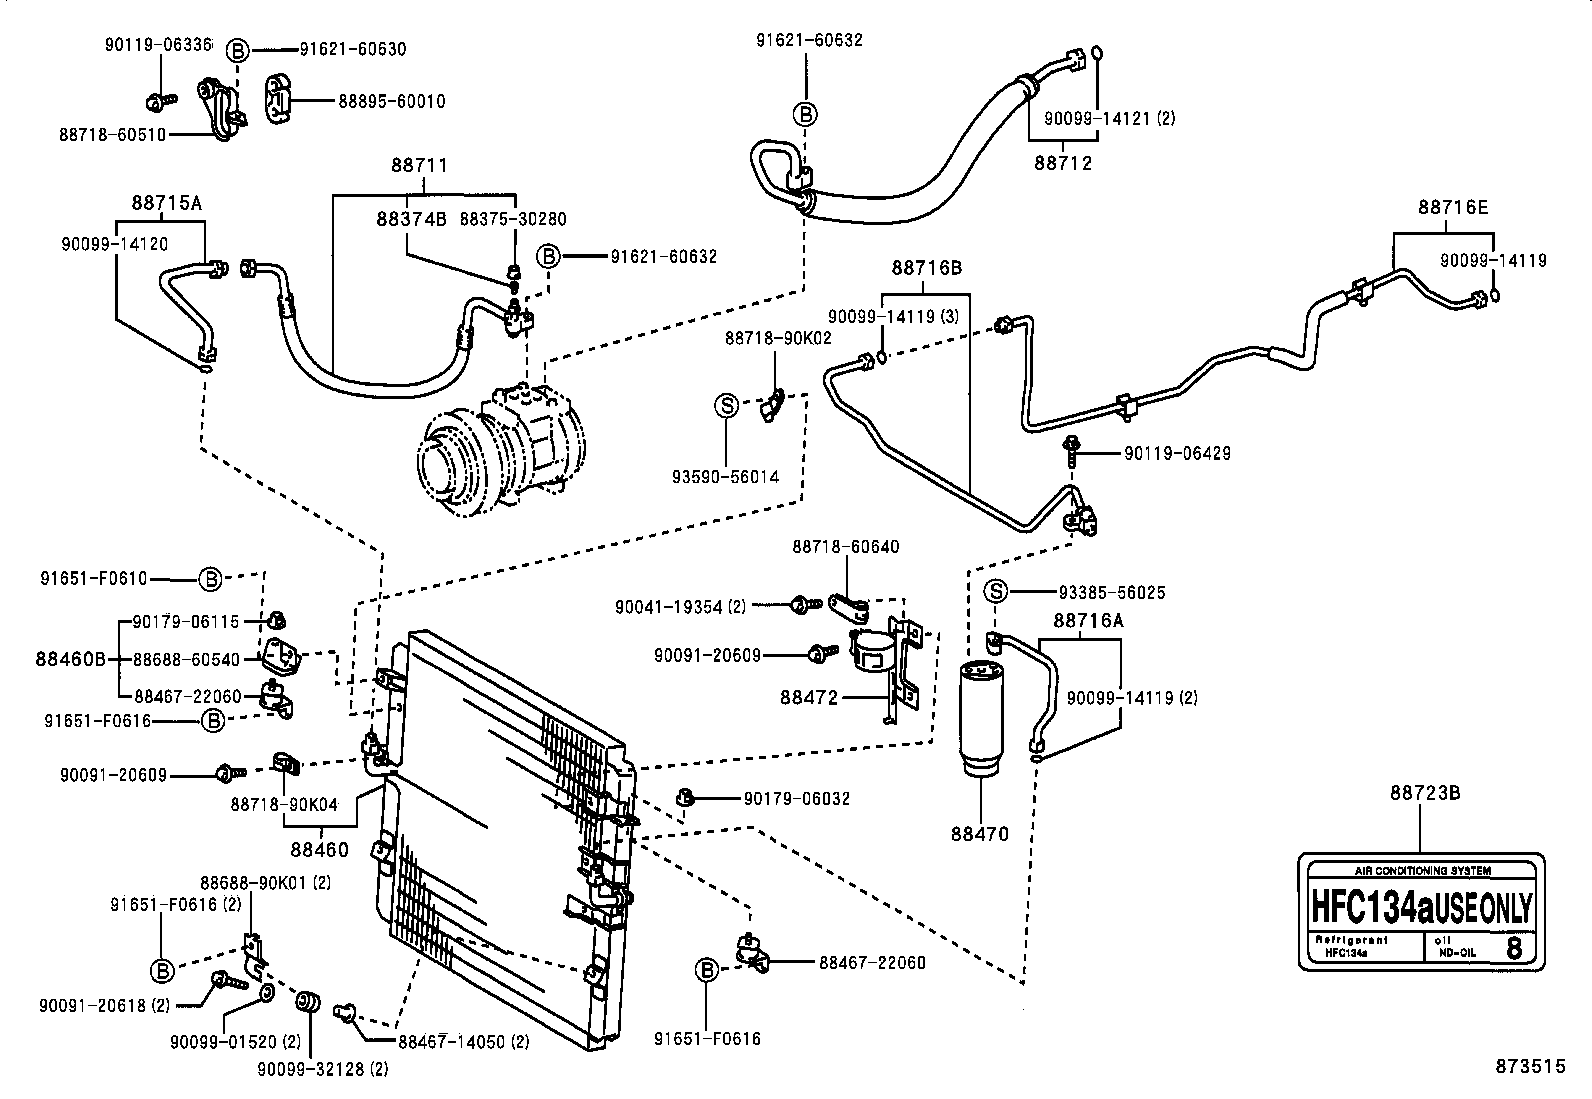 2003 Ford Escape Oxygen Sensor Diagram.html